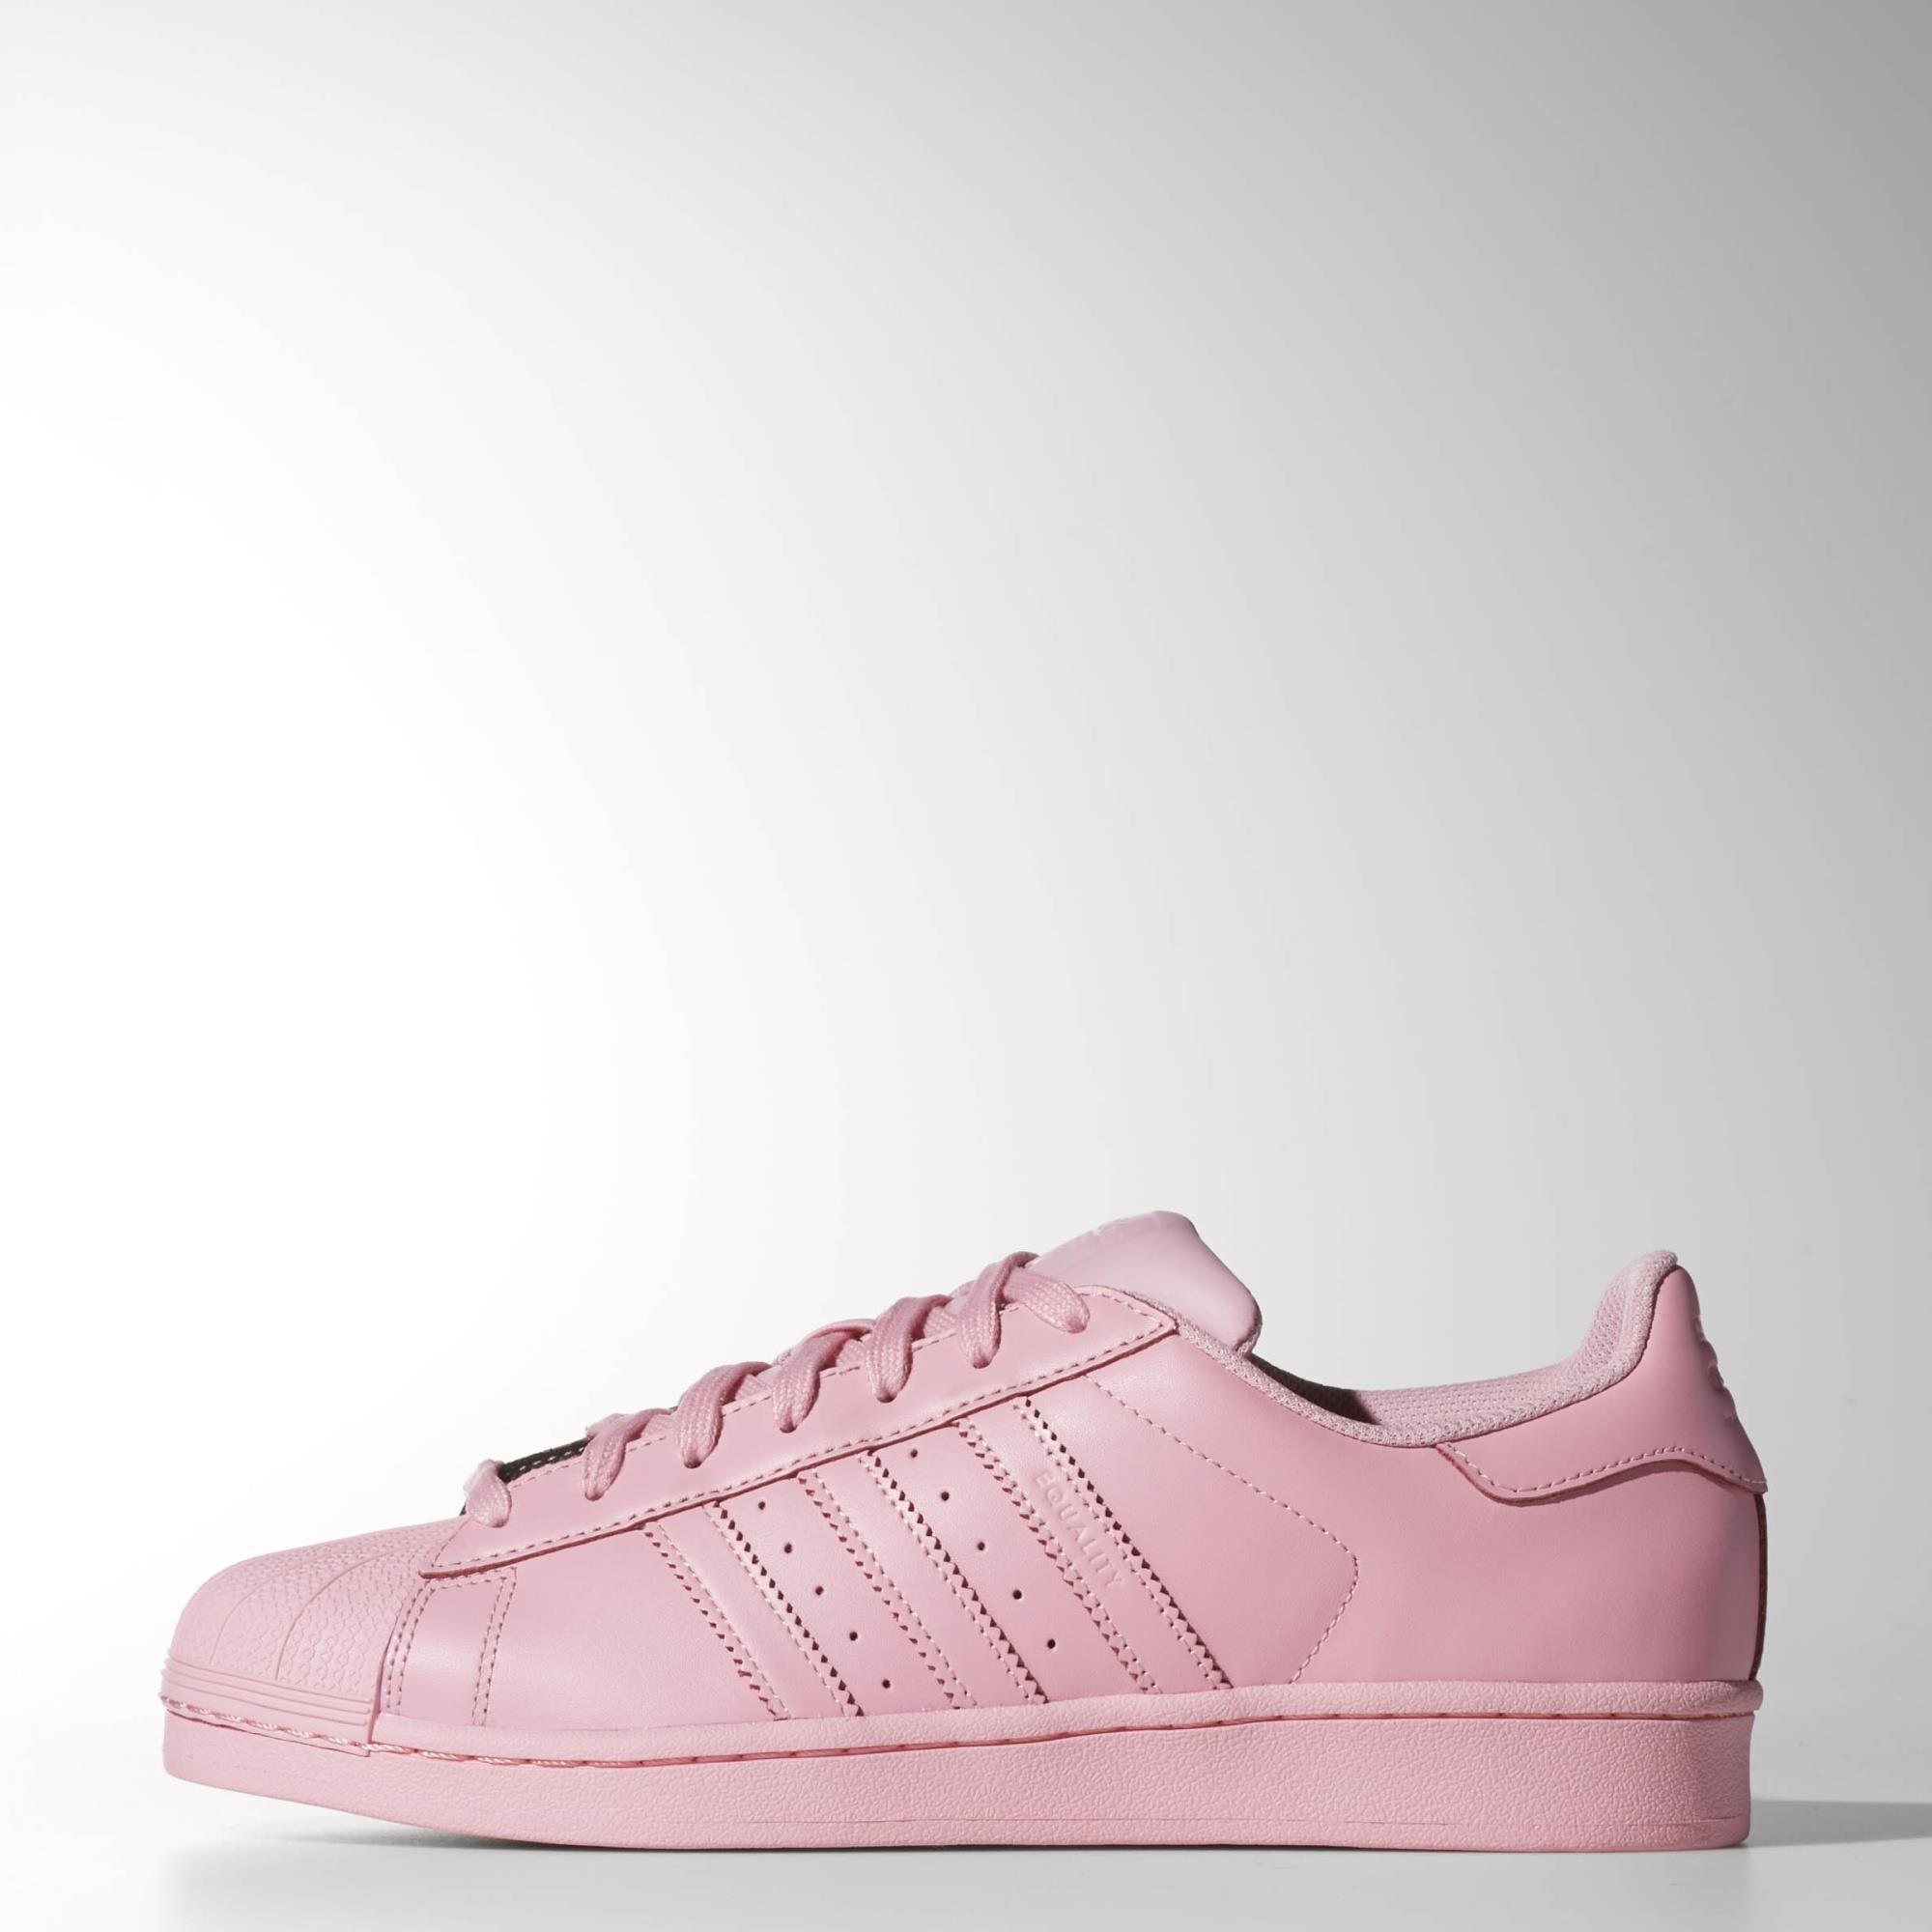 new concept 48723 be61c adidas Superstar Supercolor Shoes - Pink | adidas US